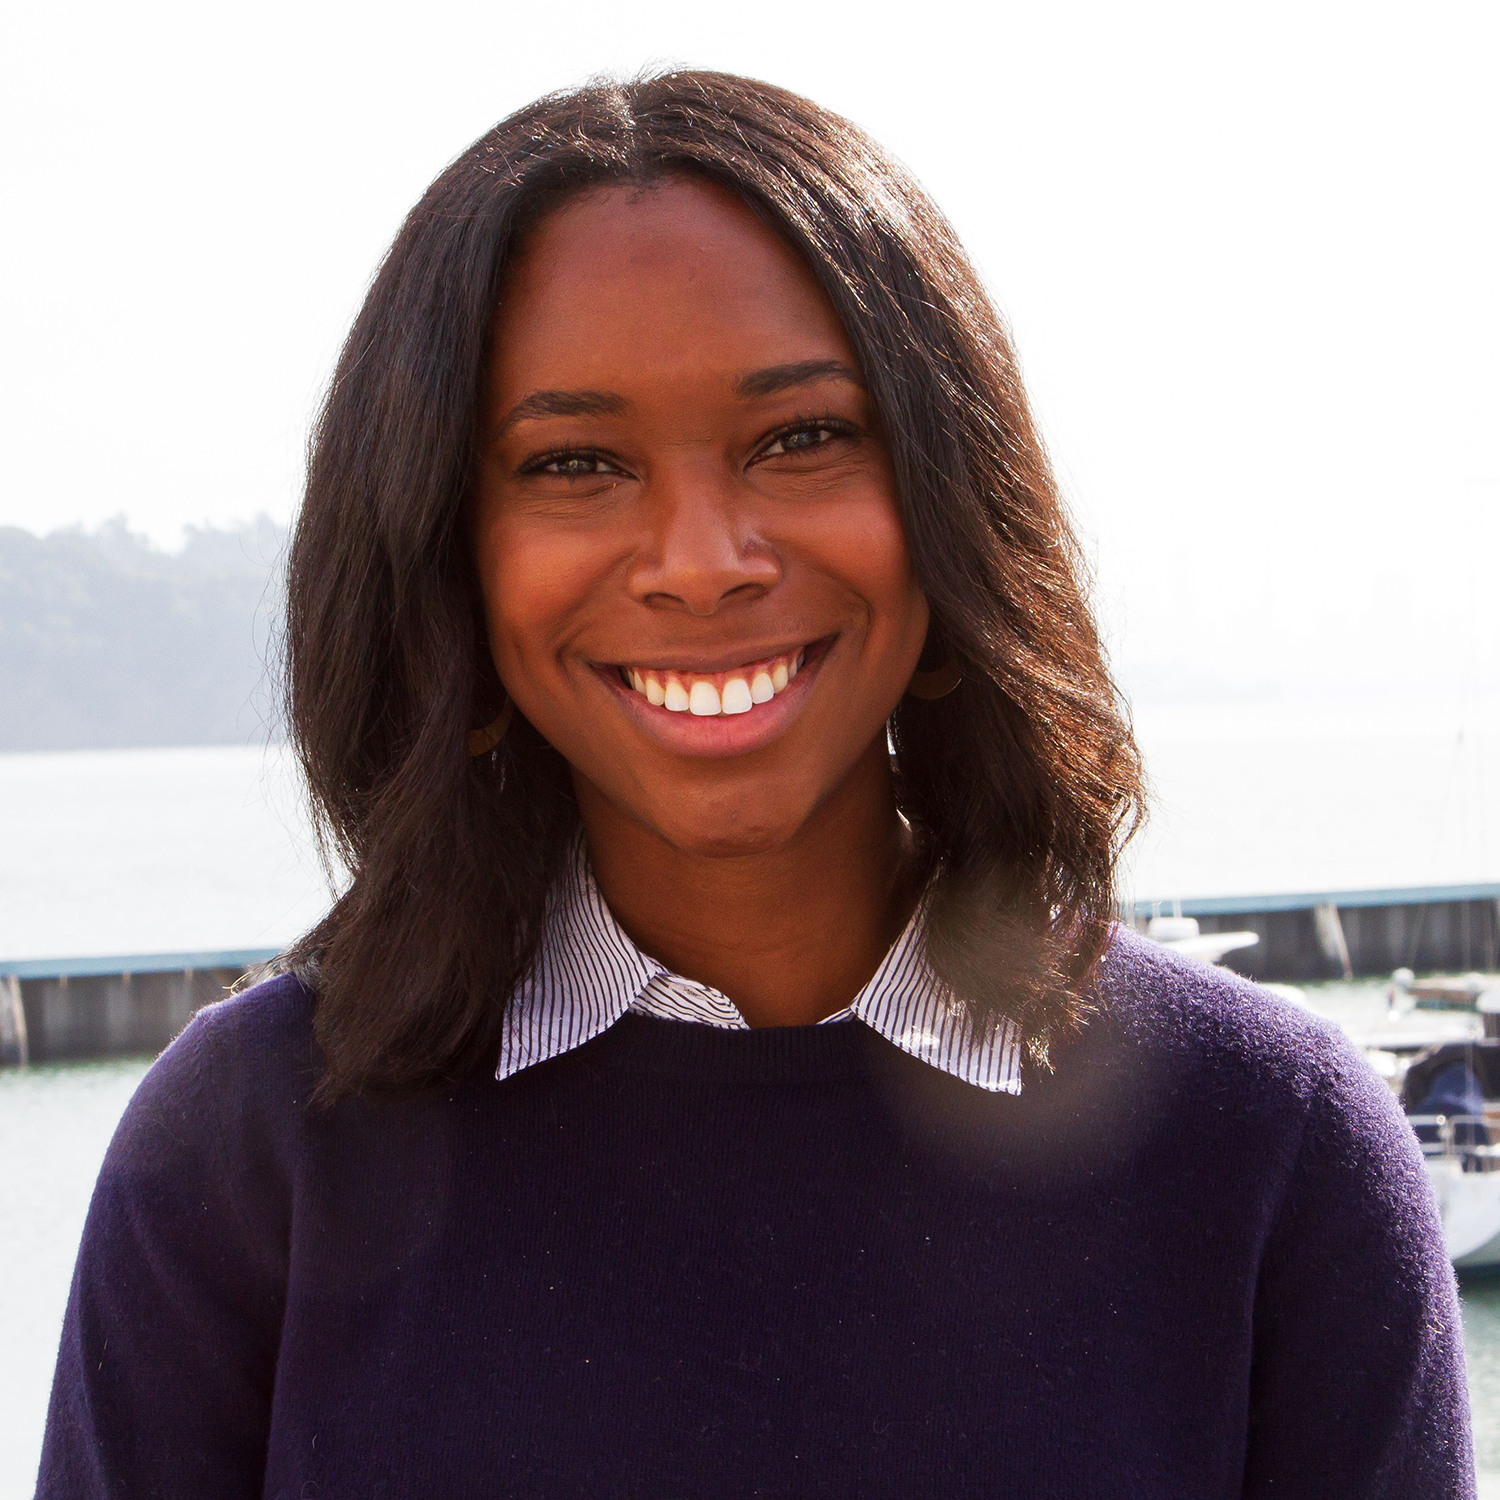 Chelsea Roberts2019 Alumna matched at Upfront VenturesCurrent role: Chief Operating Officer at HBCUvc